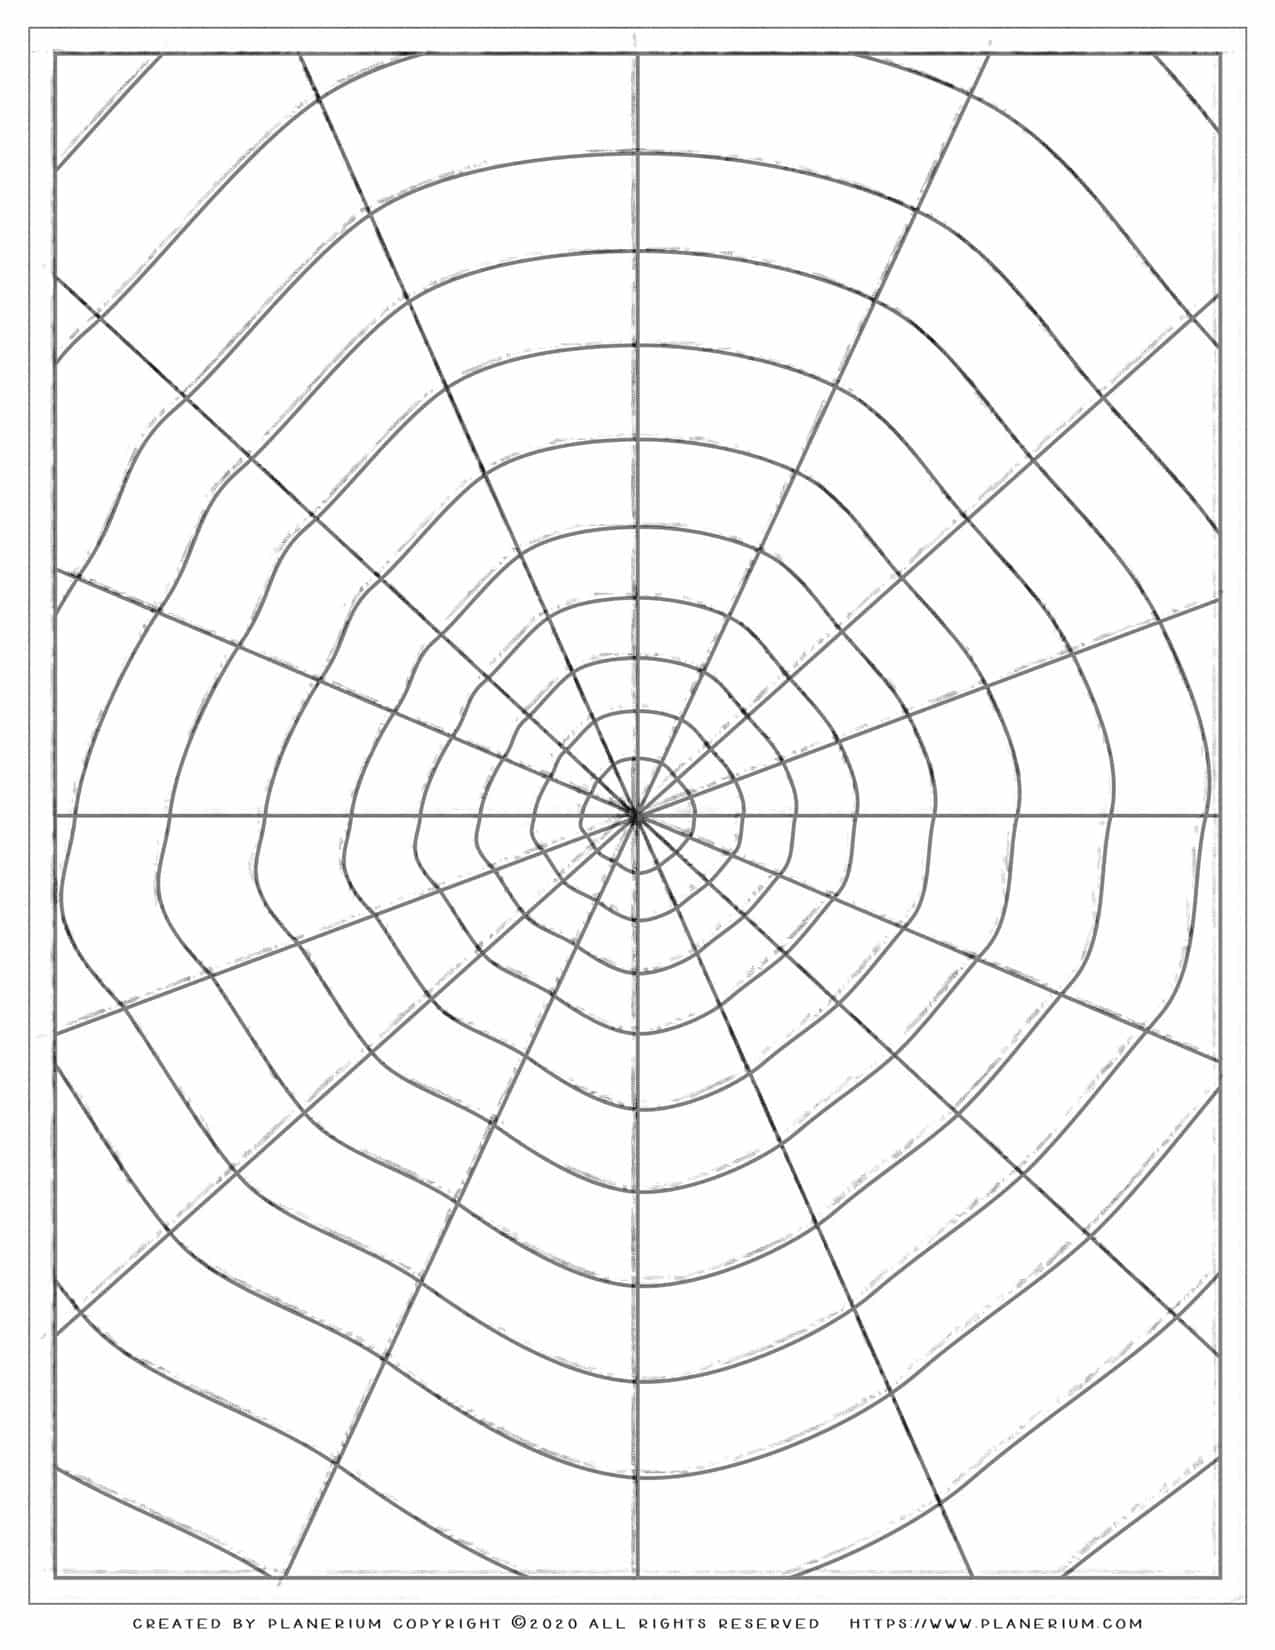 Halloween Coloring Pages - Spider Web | Planerium